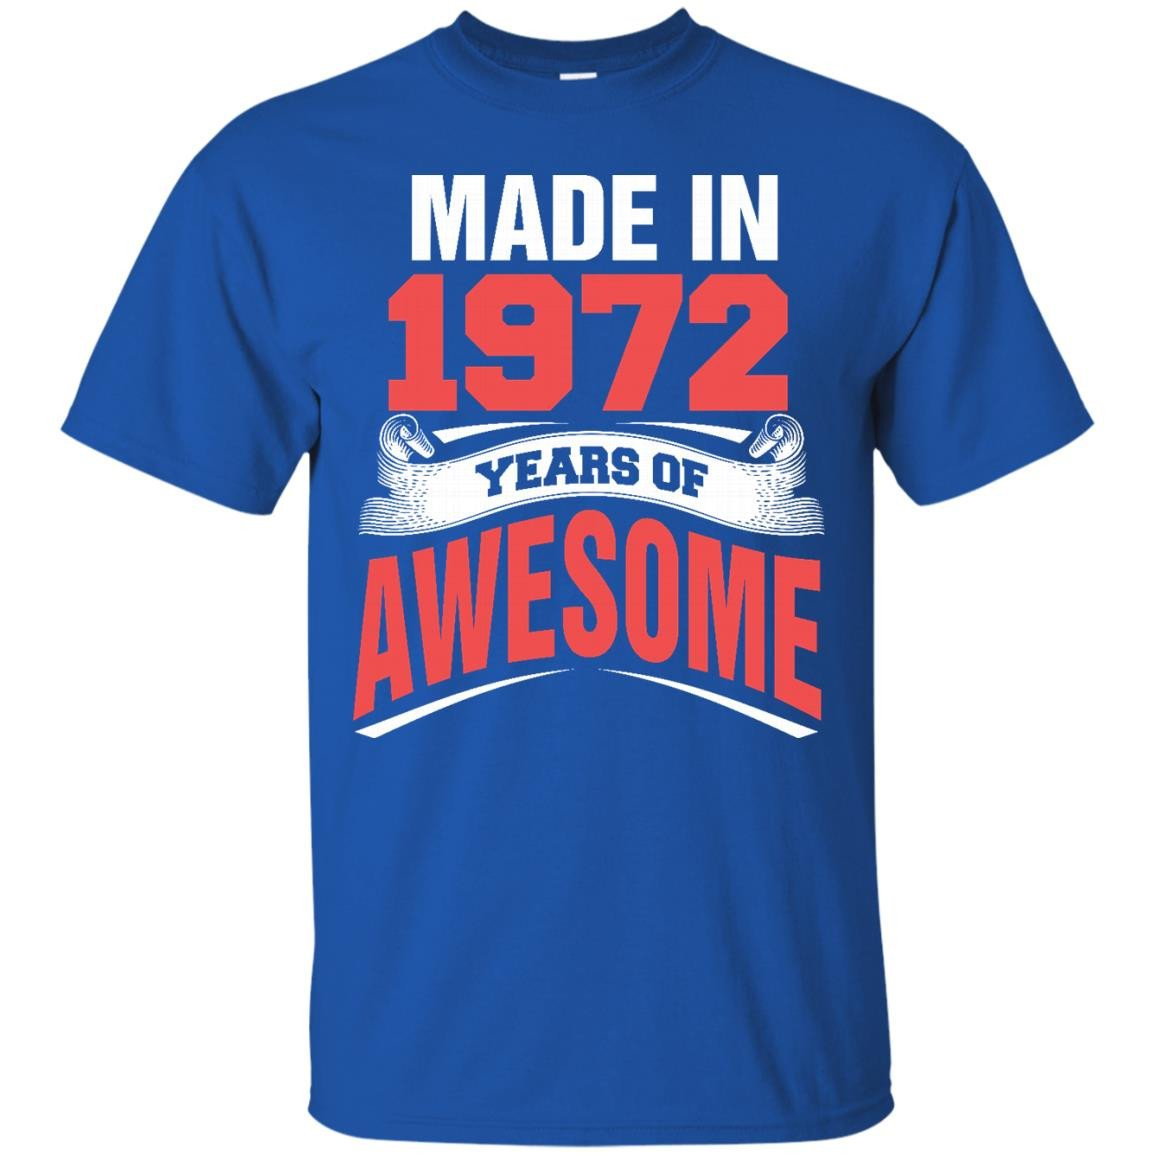 1972 Shirts Made In 1972 Year Of Awesome T-shirts Hoodies Sweatshirts